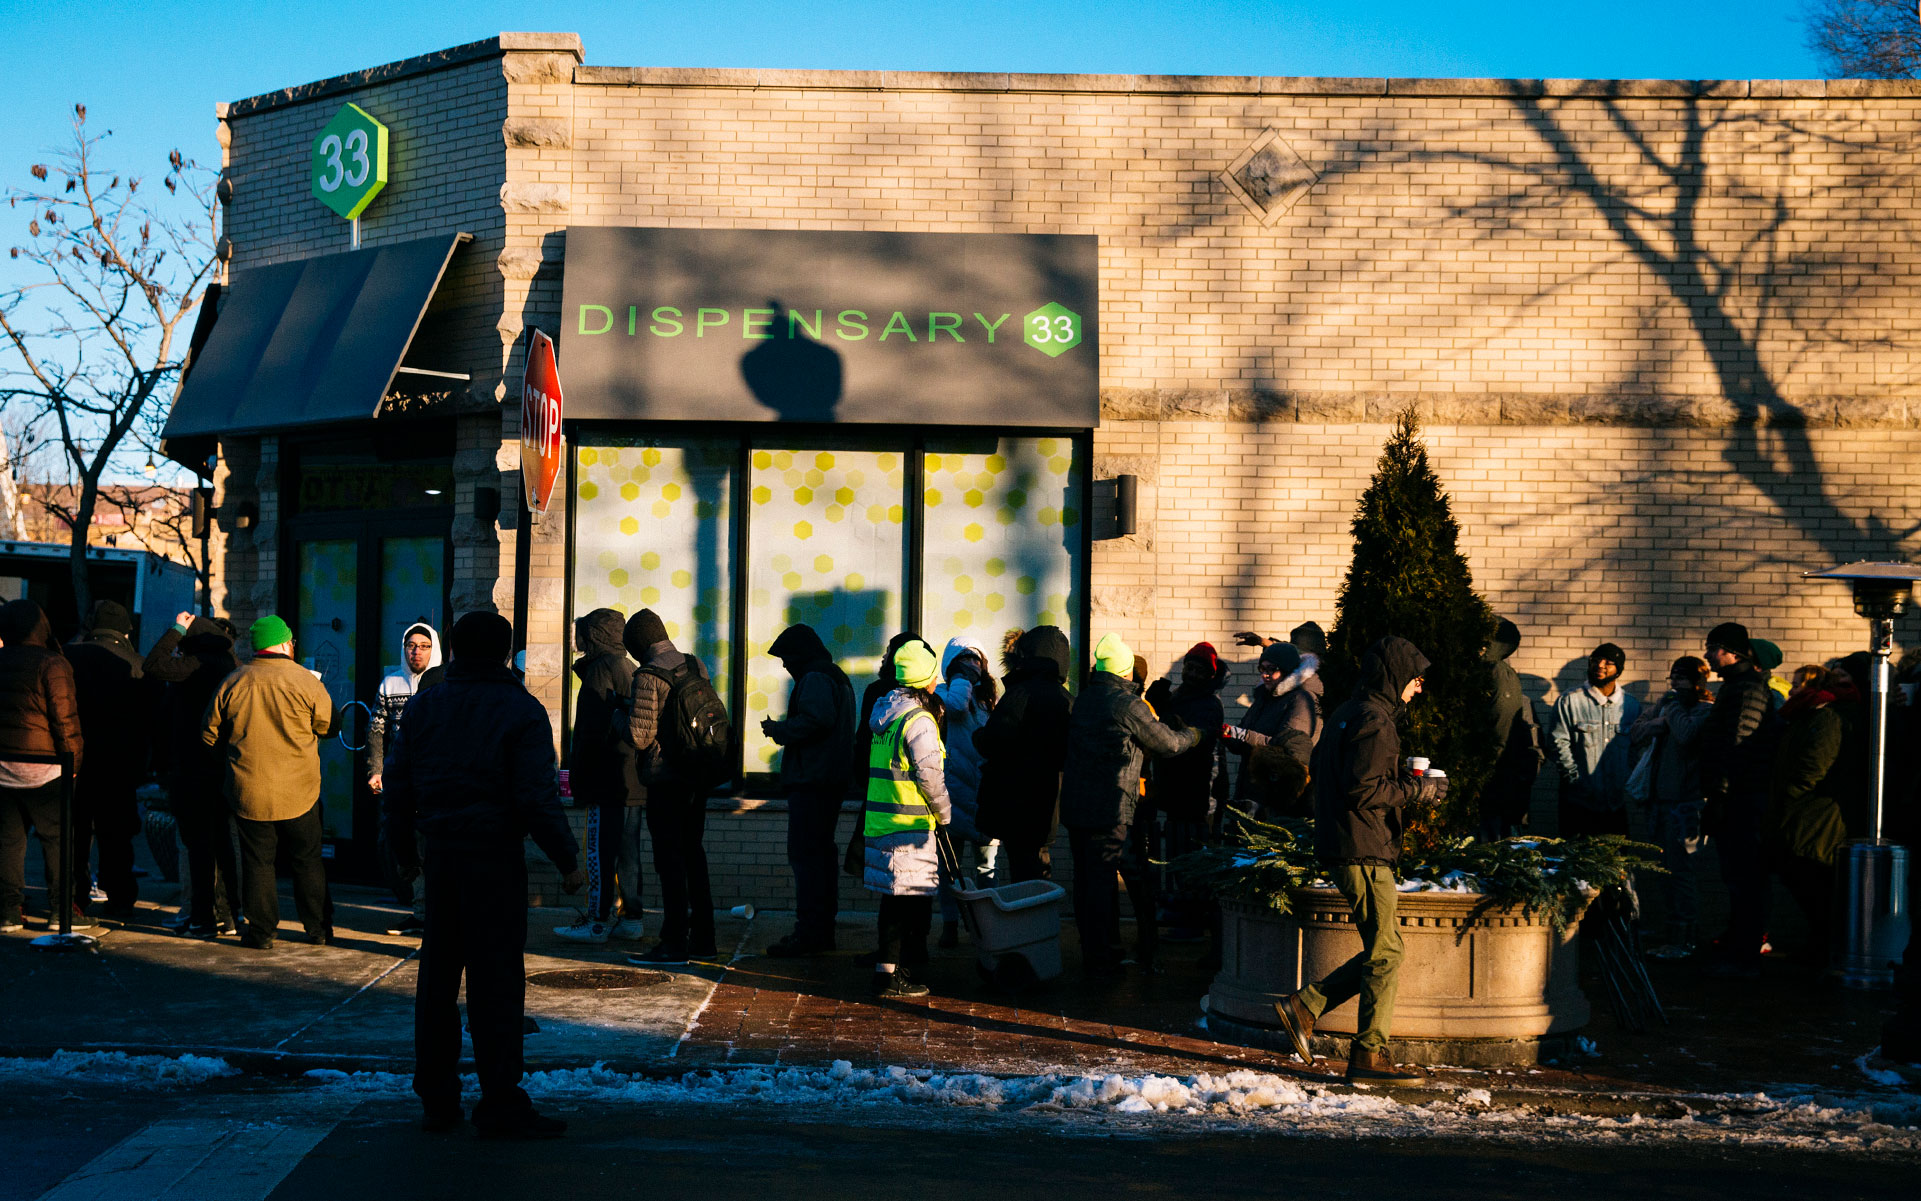 Illinois first day of recreational adult use cannabis sales on January 1, 2020